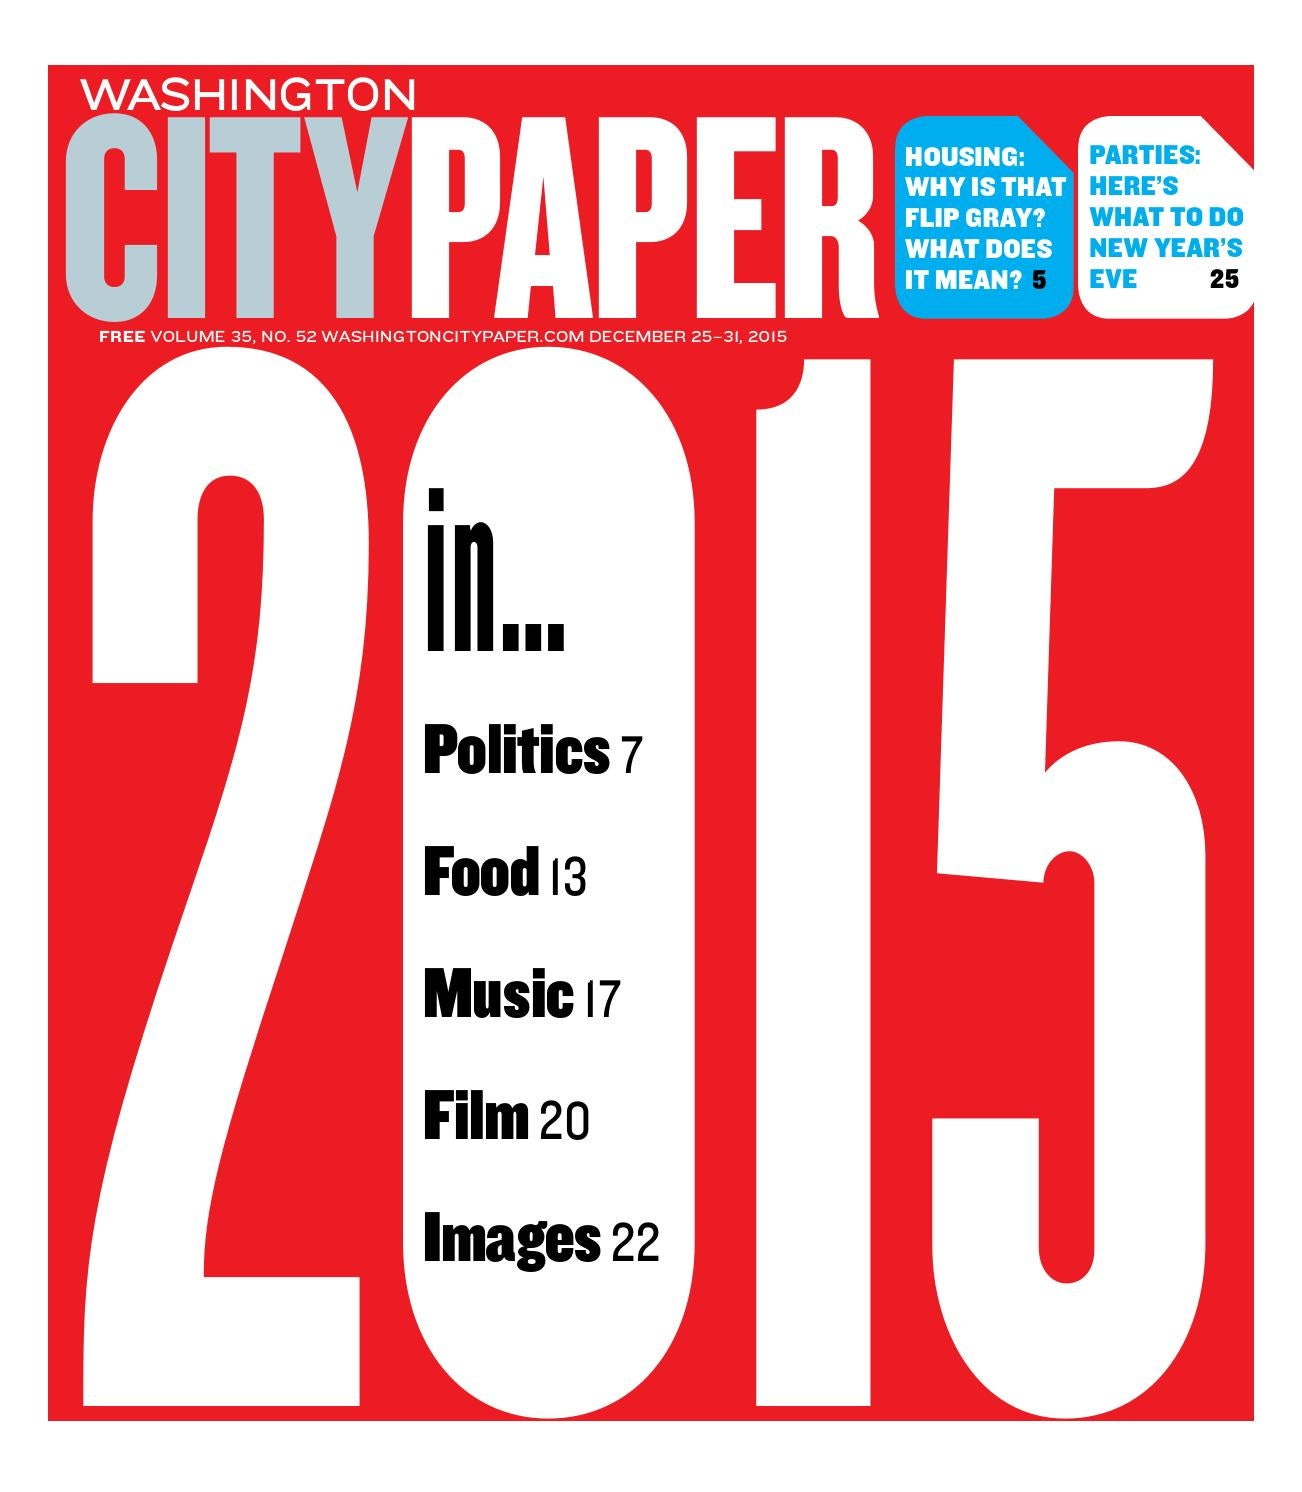 washington city paper The washington city paper is a us alternative weekly newspaper serving the washington, dc, metropolitan area it was started in 1981 by russ smith and alan hirsch, the owners of the baltimore city paper.